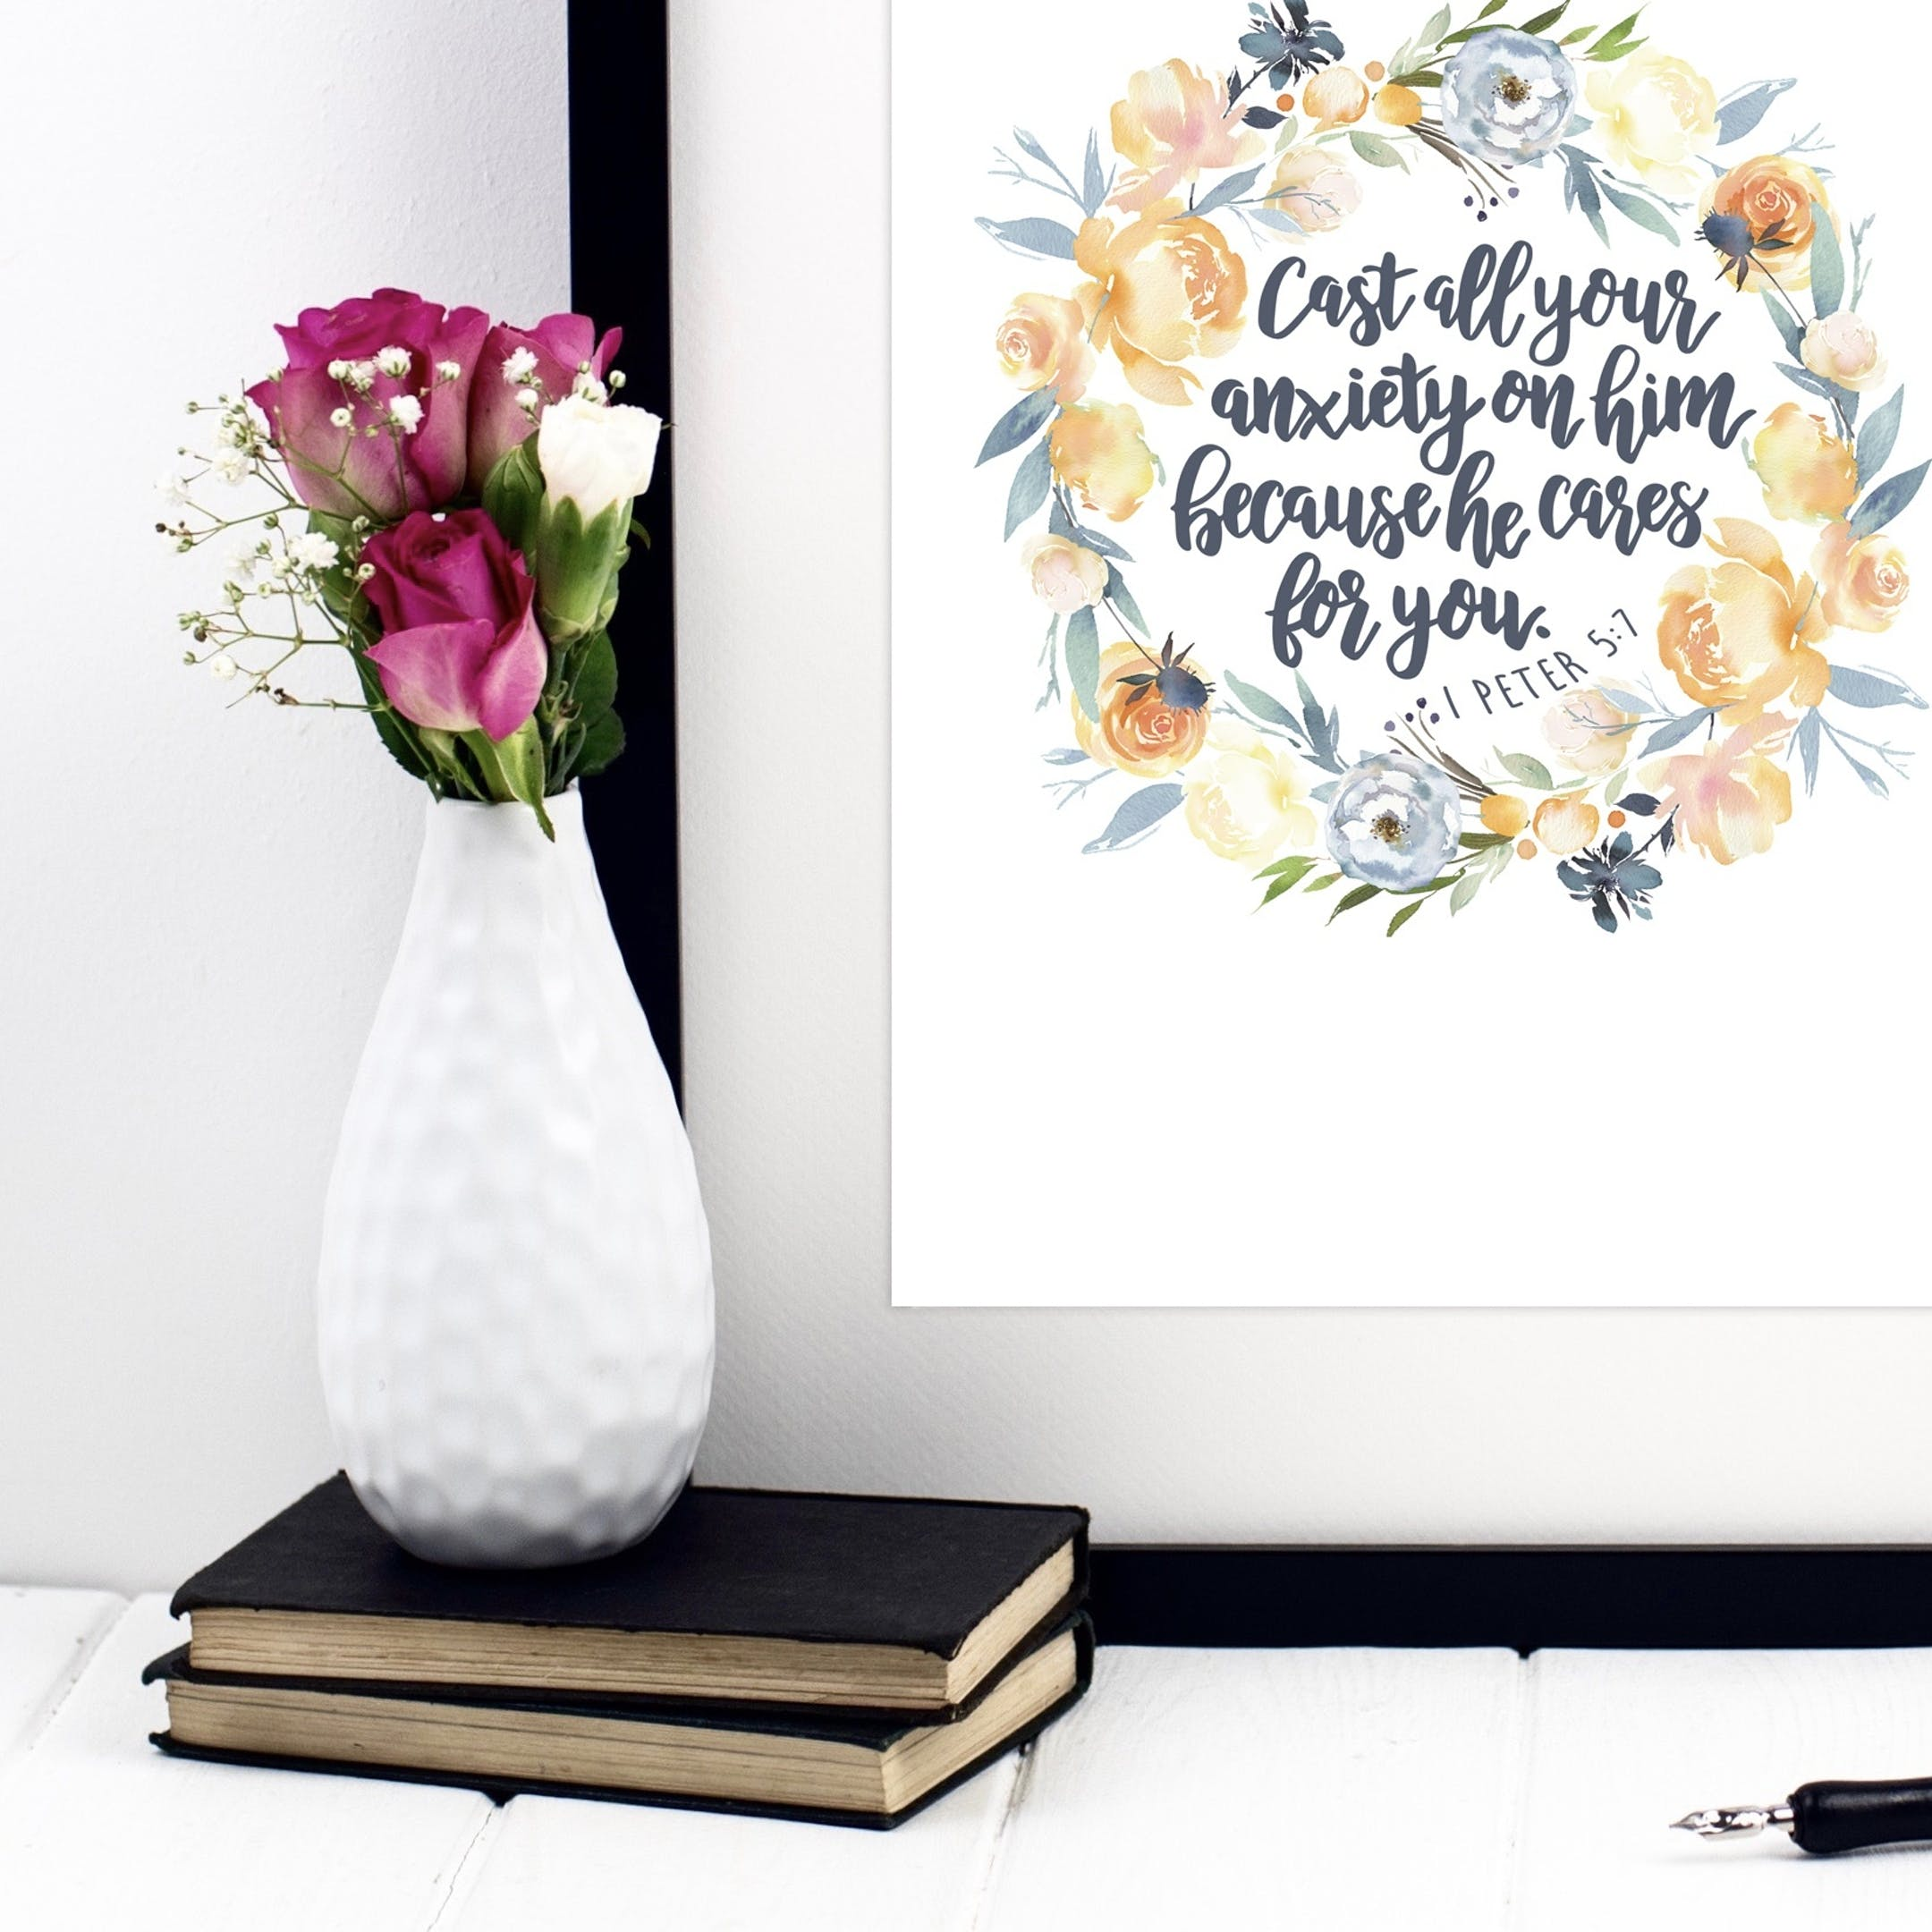 1 Peter 5:7 Wreath Print - Cast All Your Anxiety On Him - Izzy and Pop